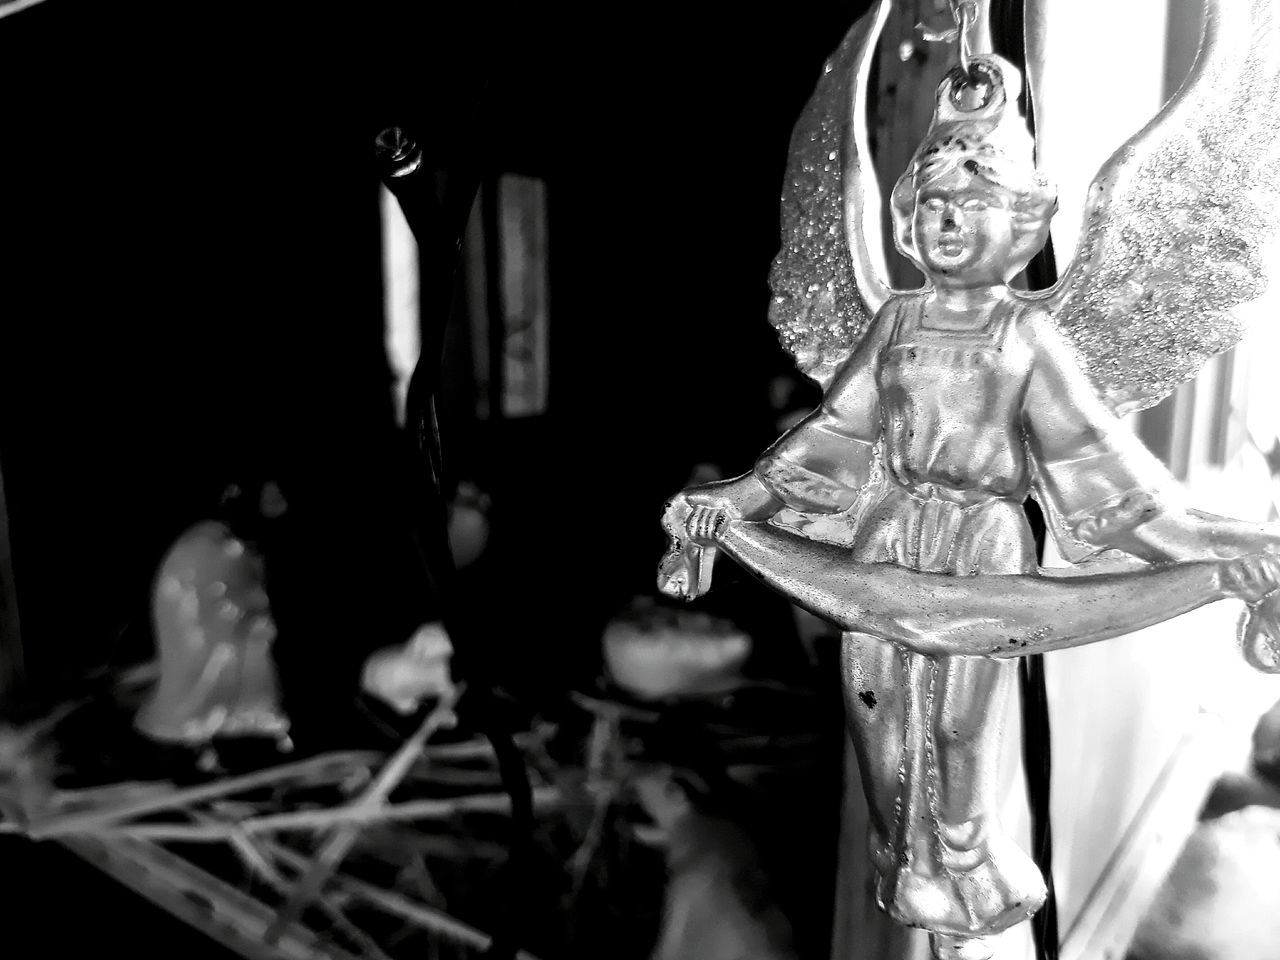 Holyspirit Spirituality Church Religion Sculpture Guideingspirit Holyplace Bnw_captures Bnw_collection